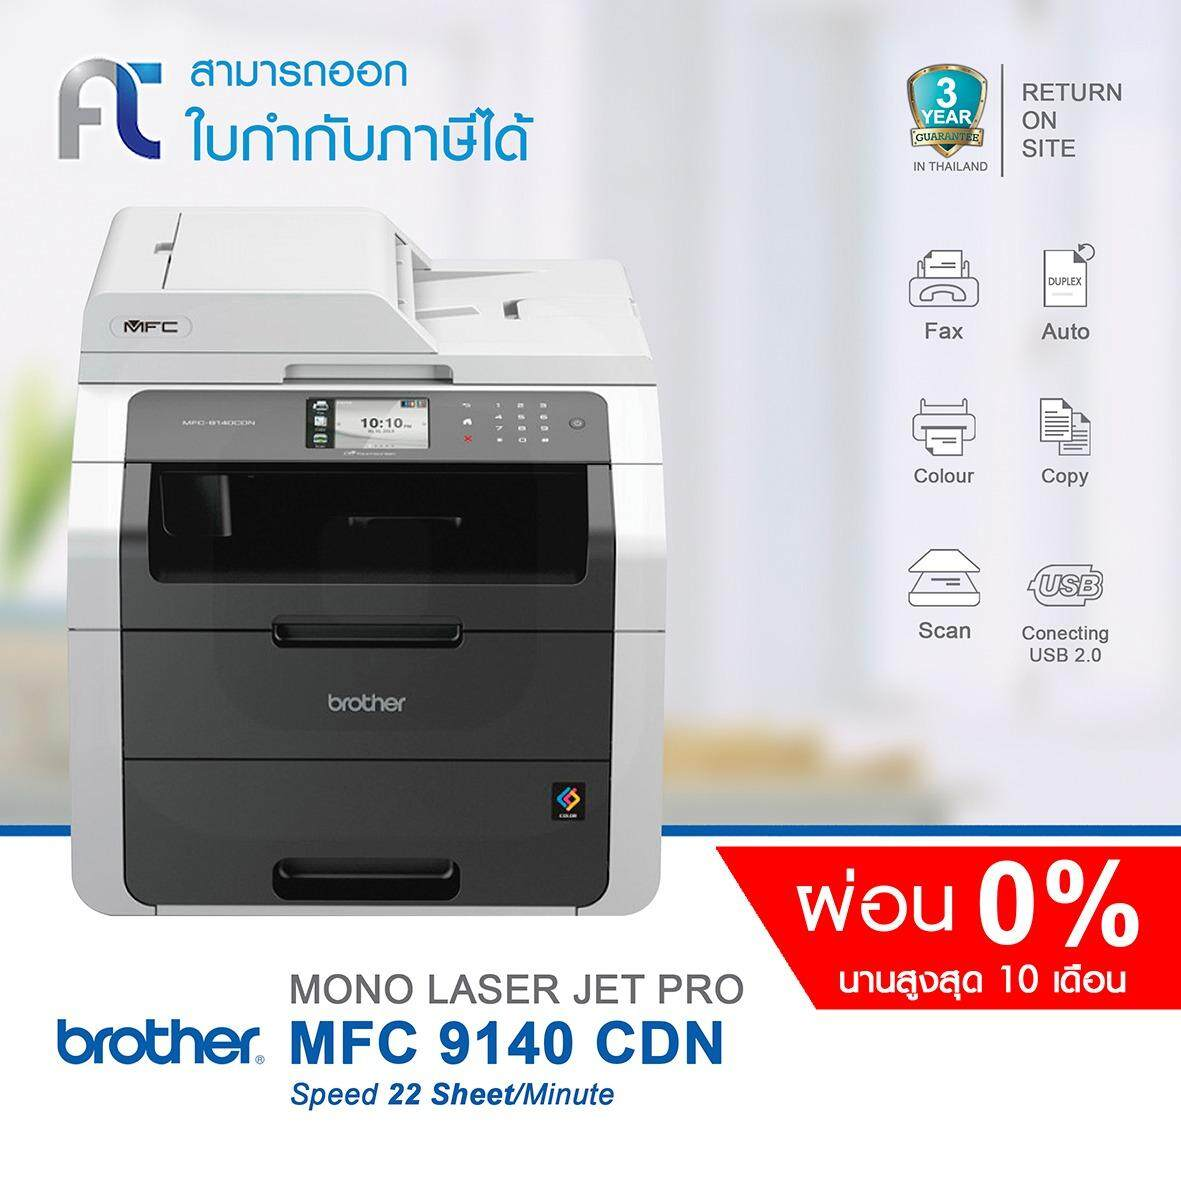 Brother Mfc 9140Cdn Colour Led Multifunction Printer 3 Years Warranty ใหม่ล่าสุด